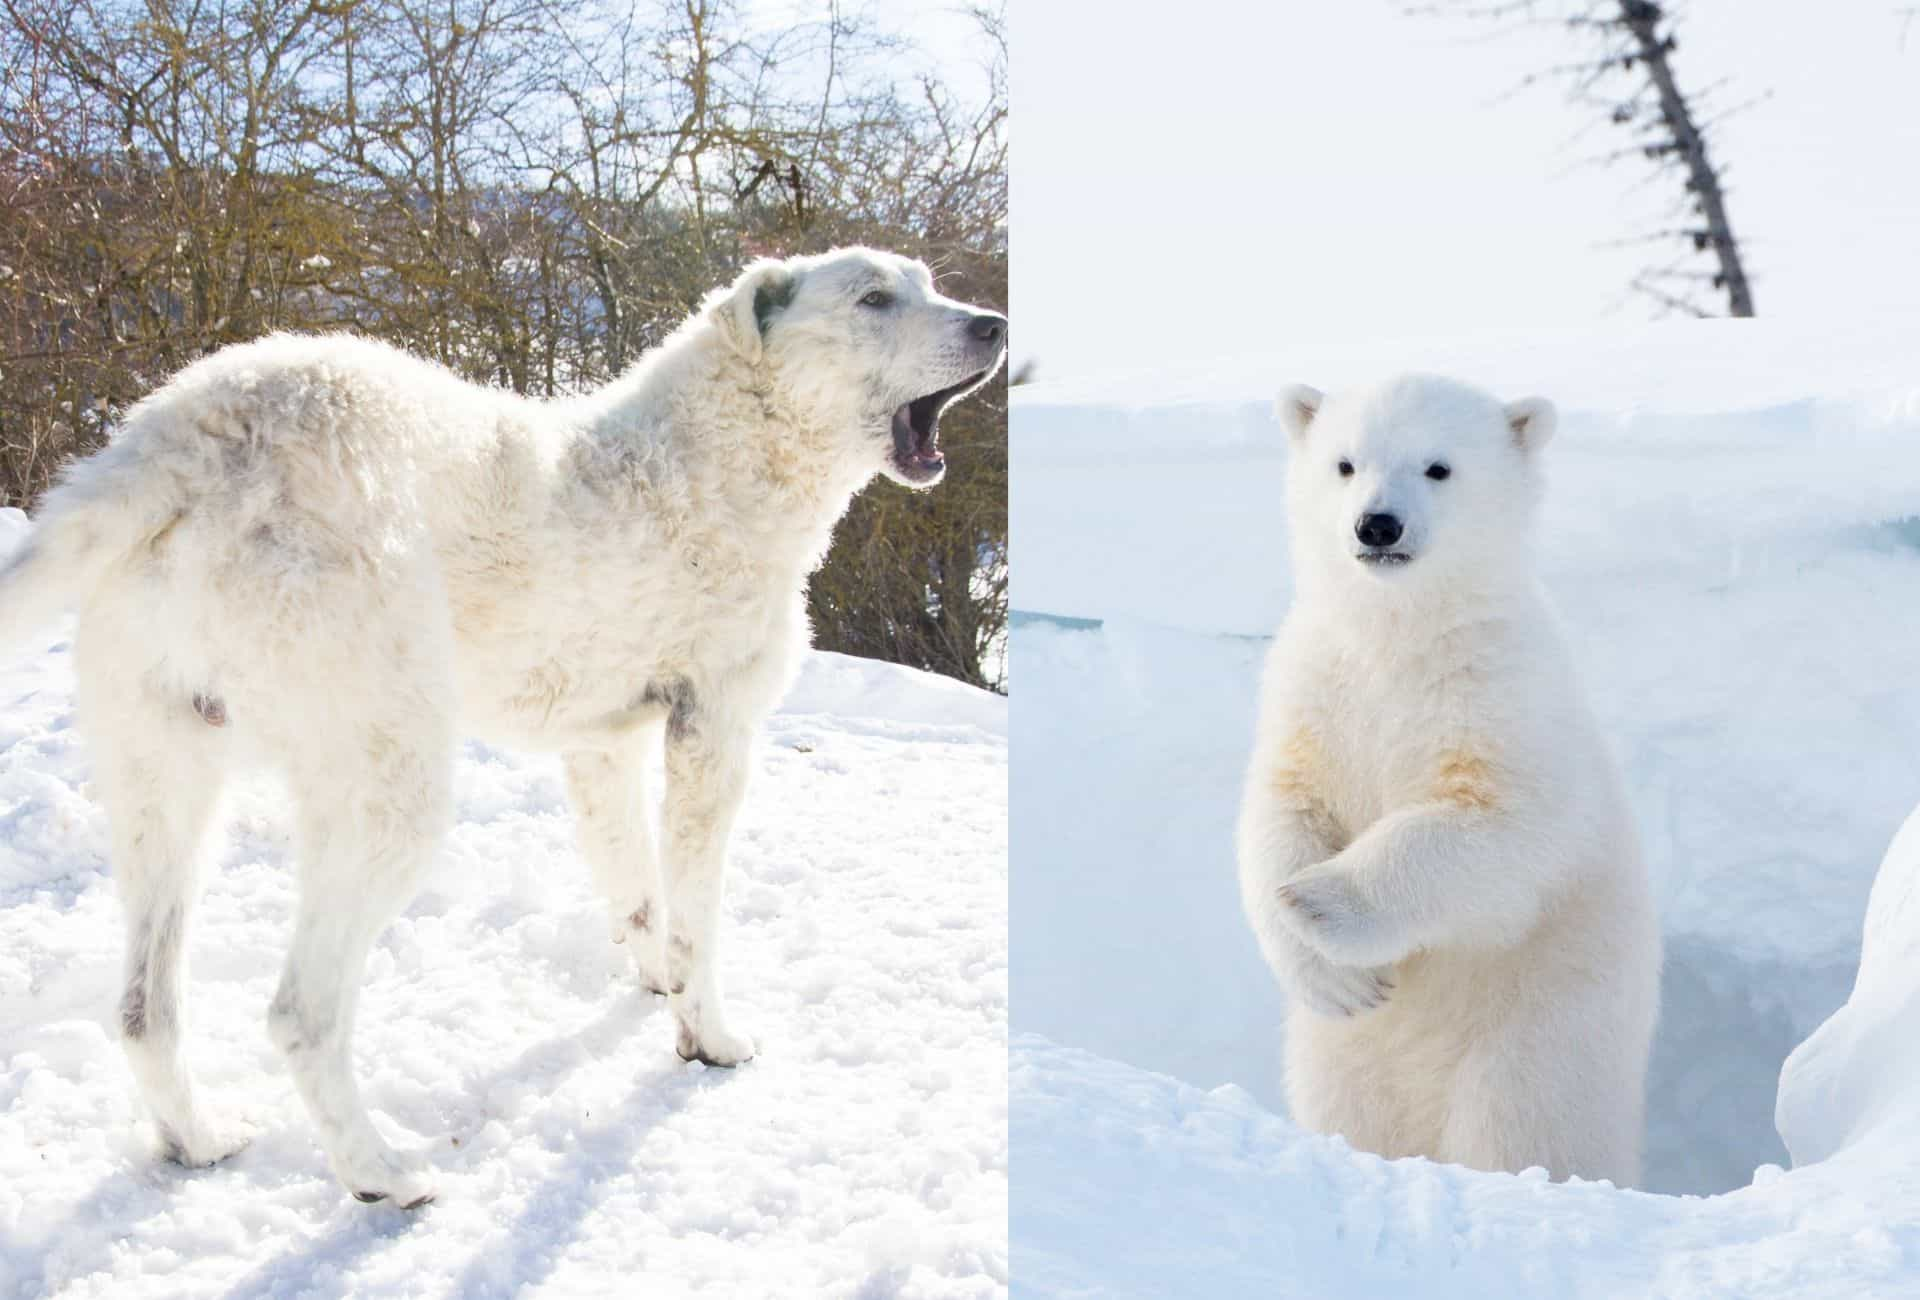 Short-coated Maremma Sheepdog in the snow featured next to a bear cub standing up.